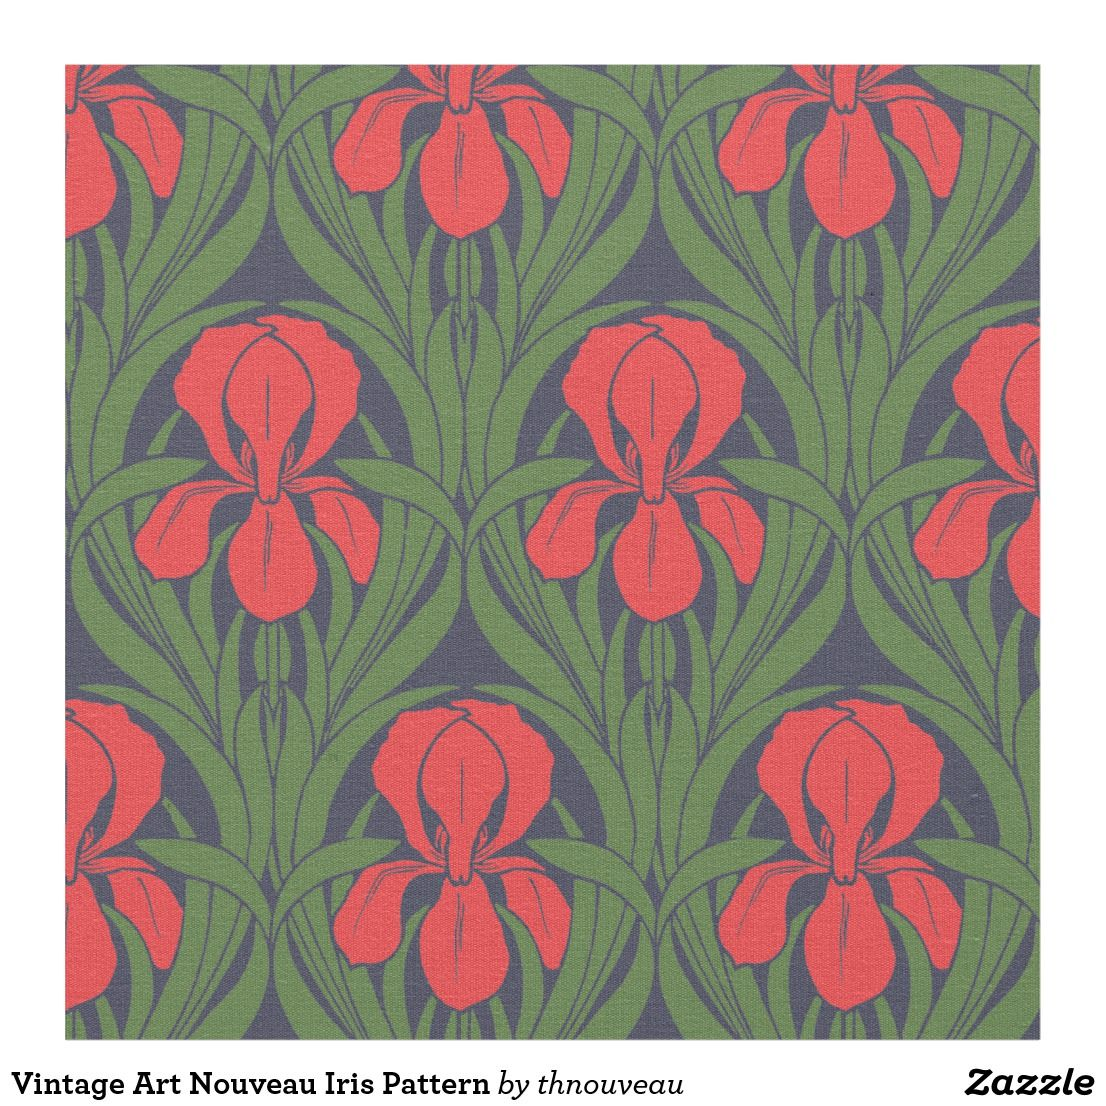 Vintage Art Nouveau Iris Pattern Fabric In 2020 Vintage Art Upholstry Fabric Colorful Backgrounds